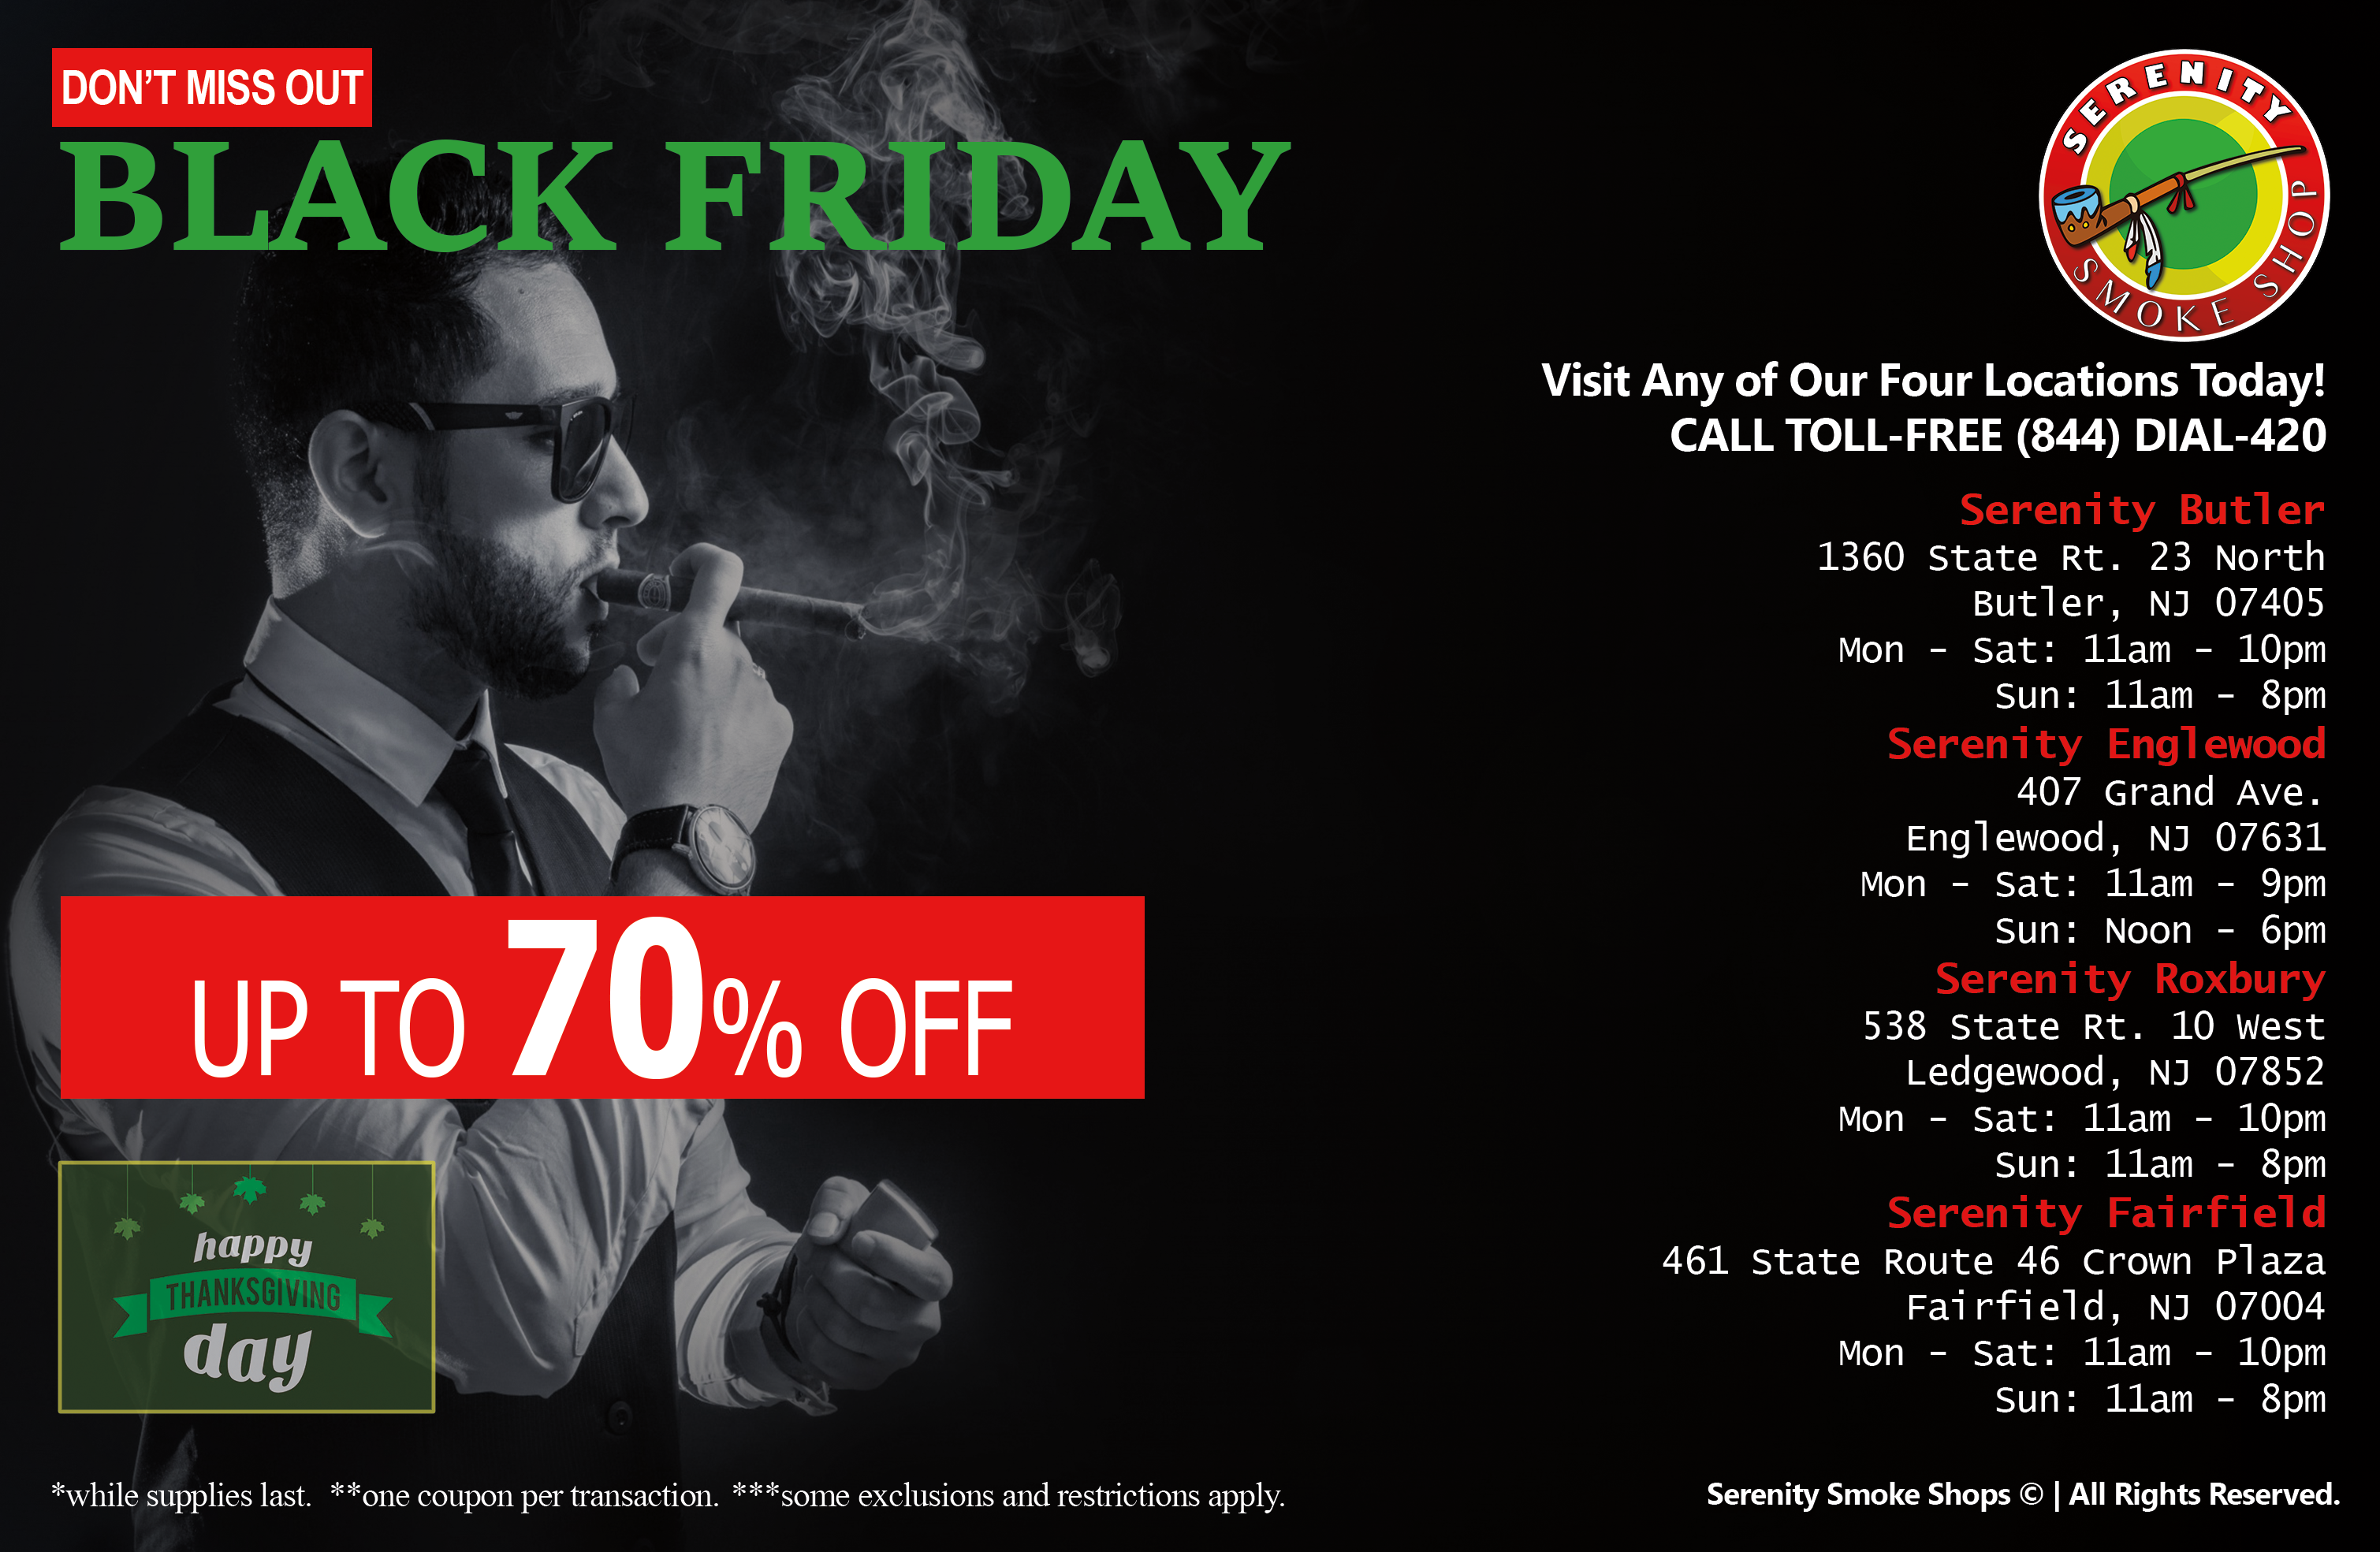 DON'T MISS OUT - BLACK FRIDAY -  UP TO 70% OFF - Serenity Smoke Shop